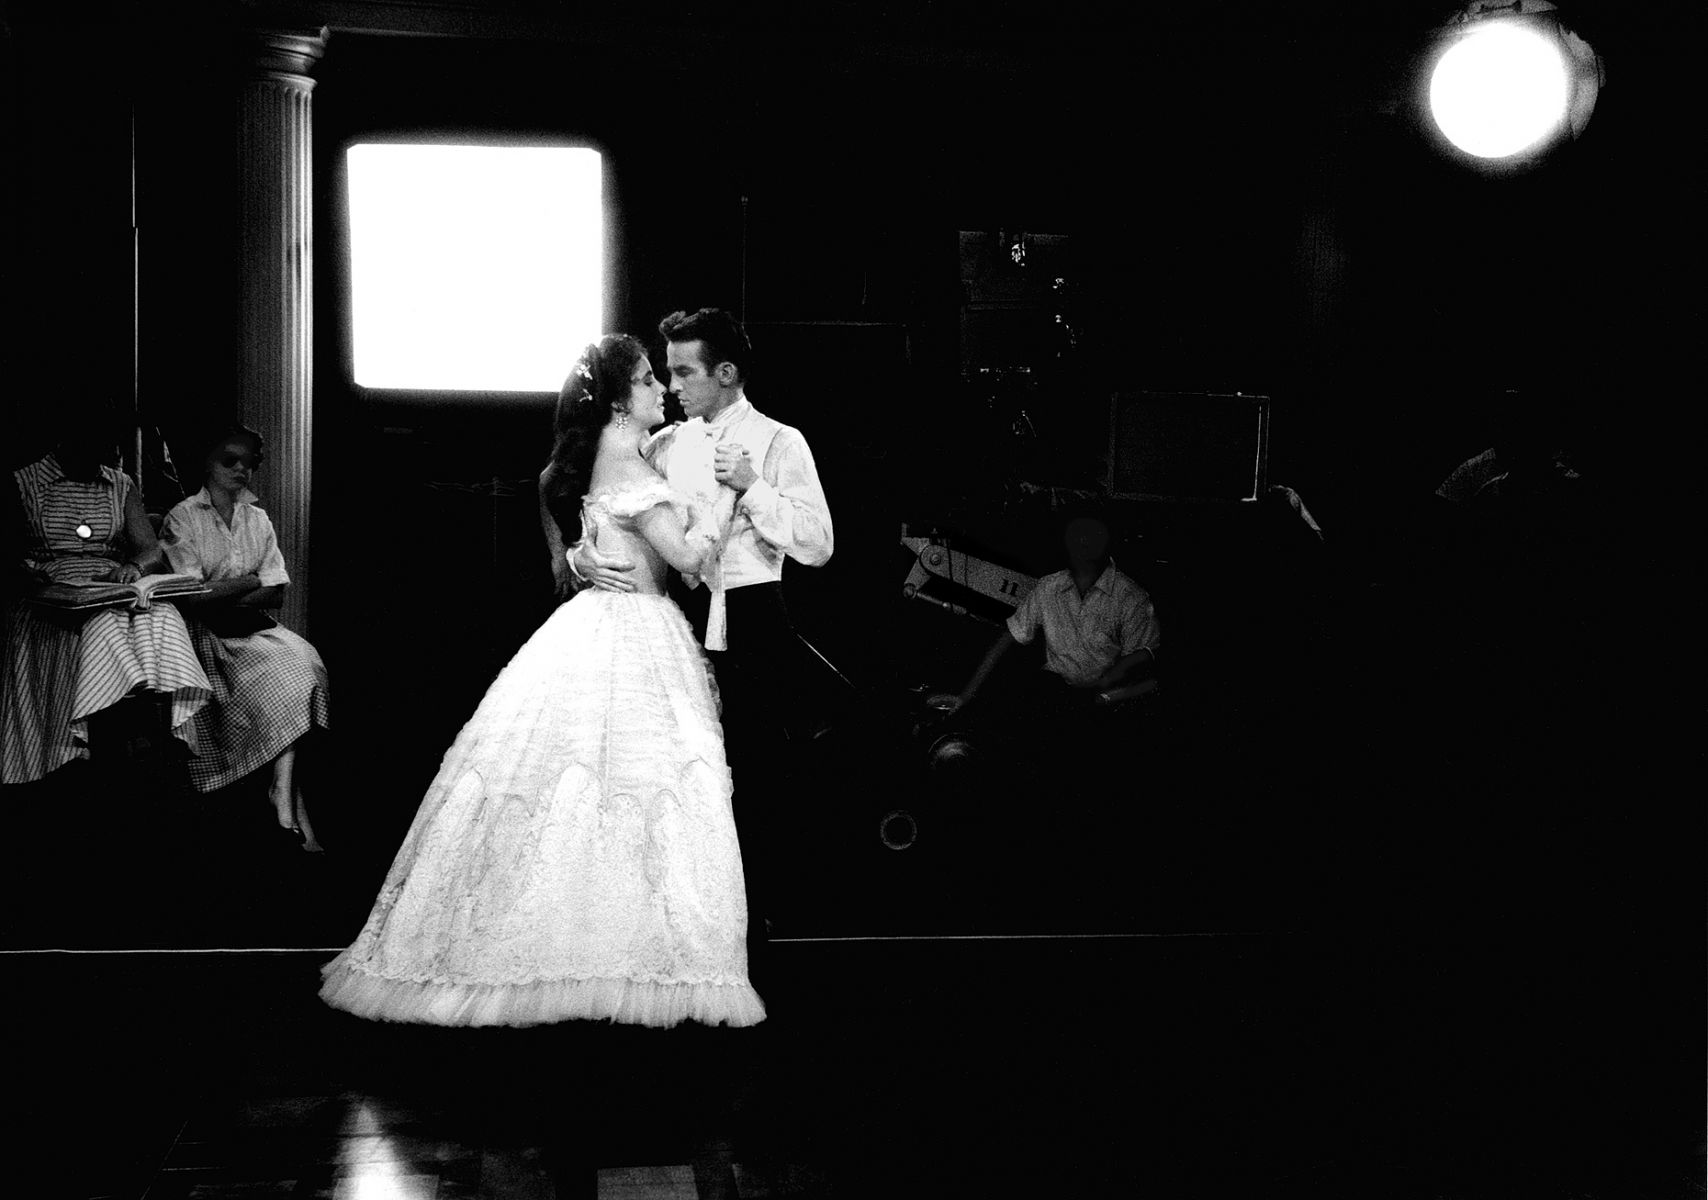 Elizabeth Taylor and Montgomery Clift dance in rehearsal on the MGM set of Raintree County, 1956.